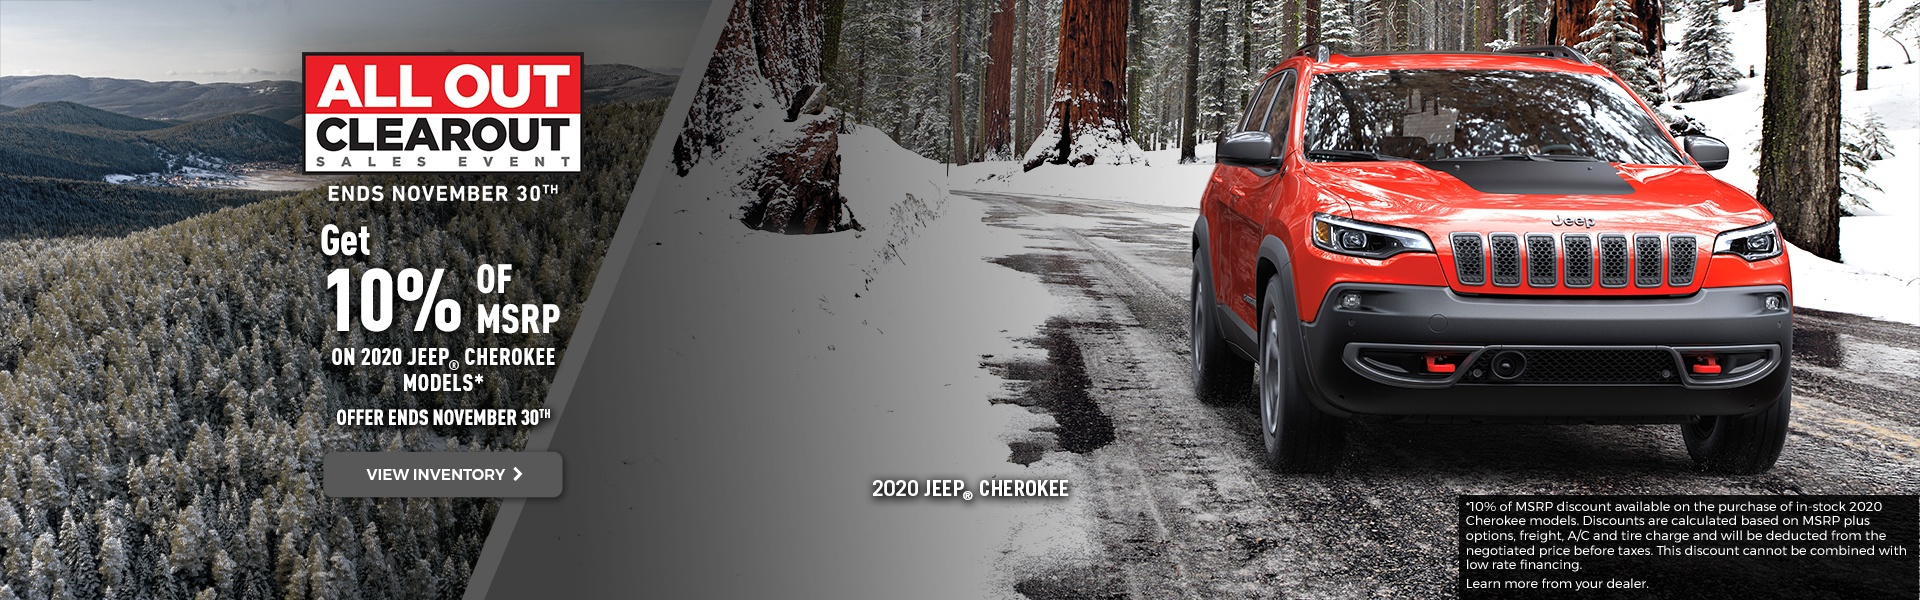 November 2020 JEEP CHEROKEE Offer